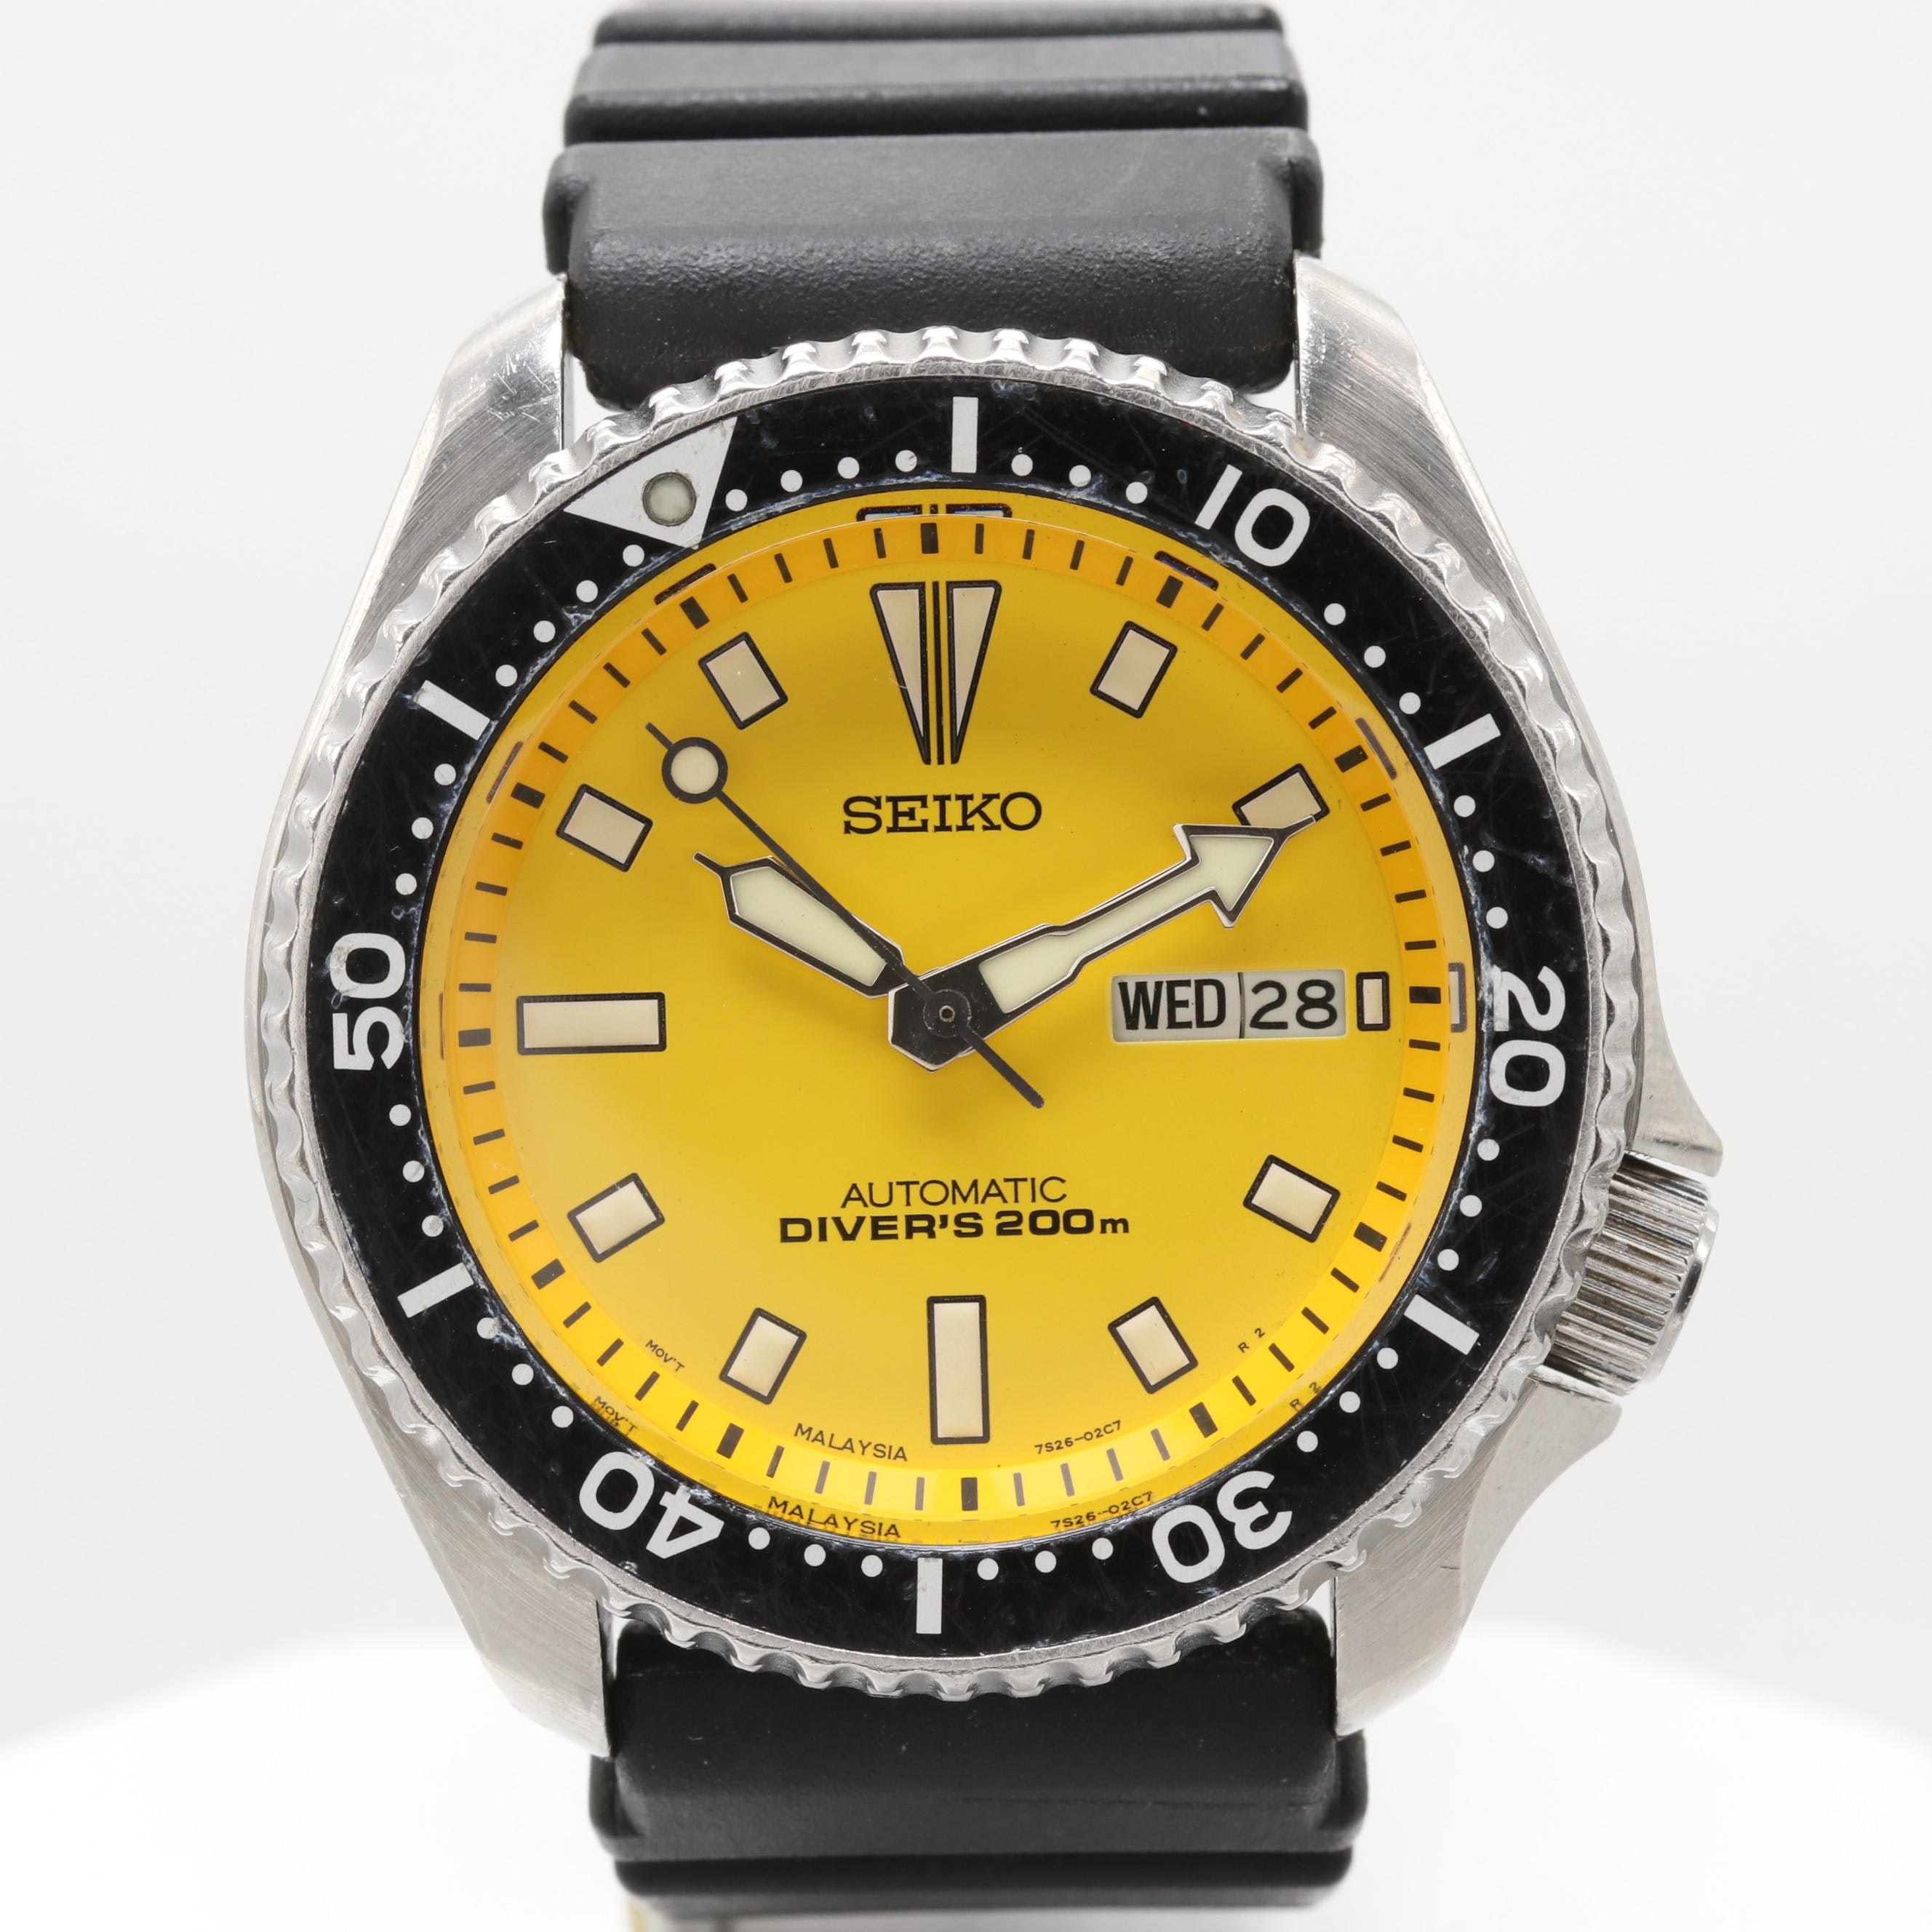 Seiko Diver's 200M Automatic Wristwatch With Day-Date Window